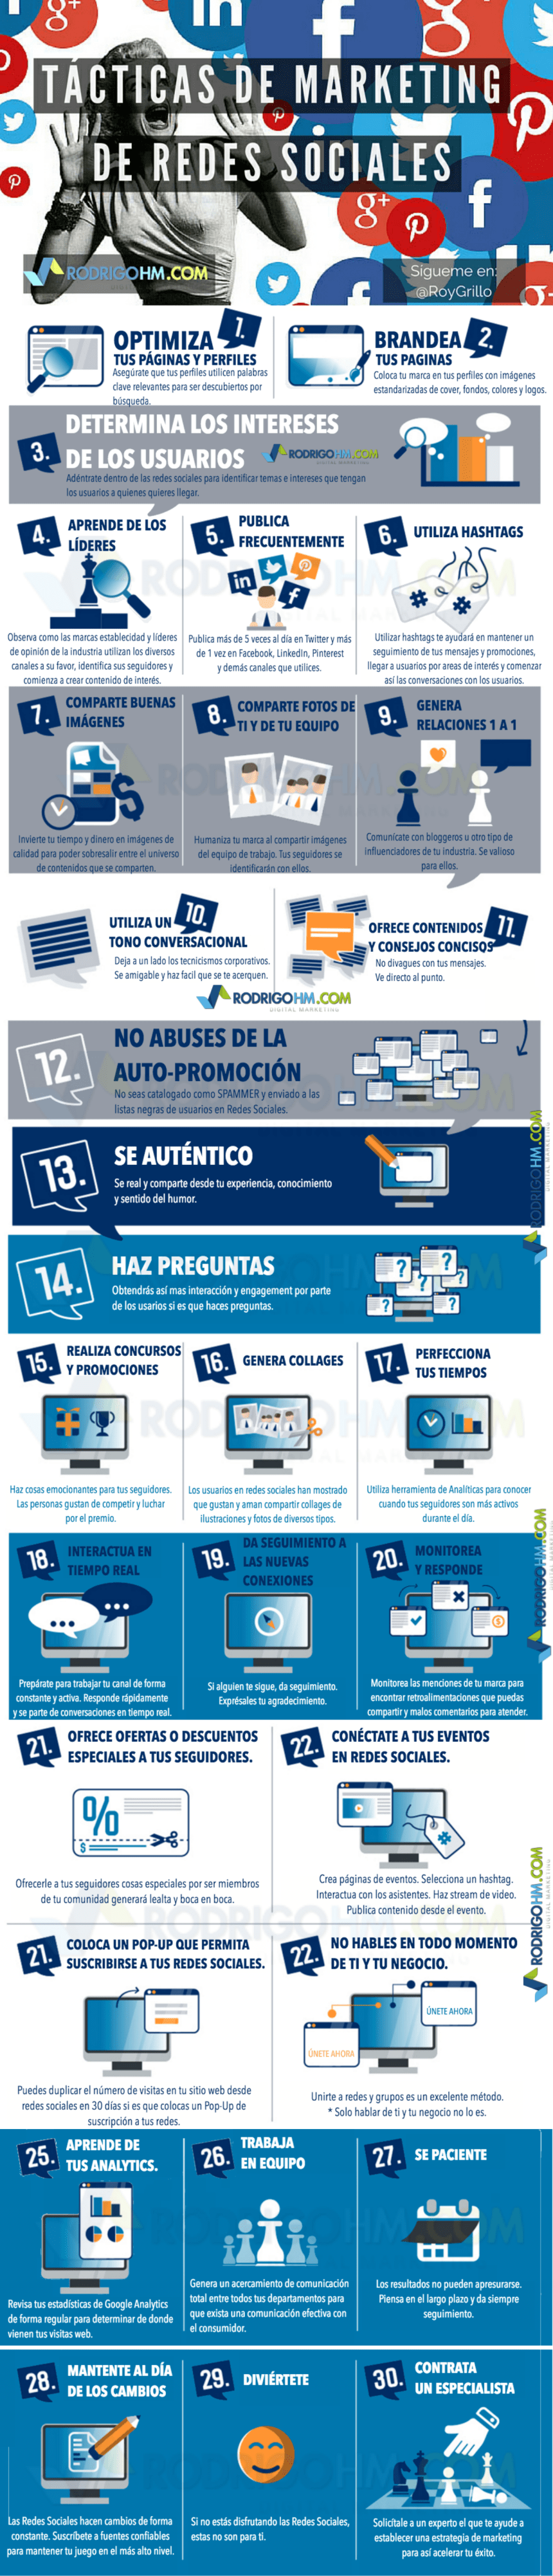 Tácticas de Marketing en Redes Sociales